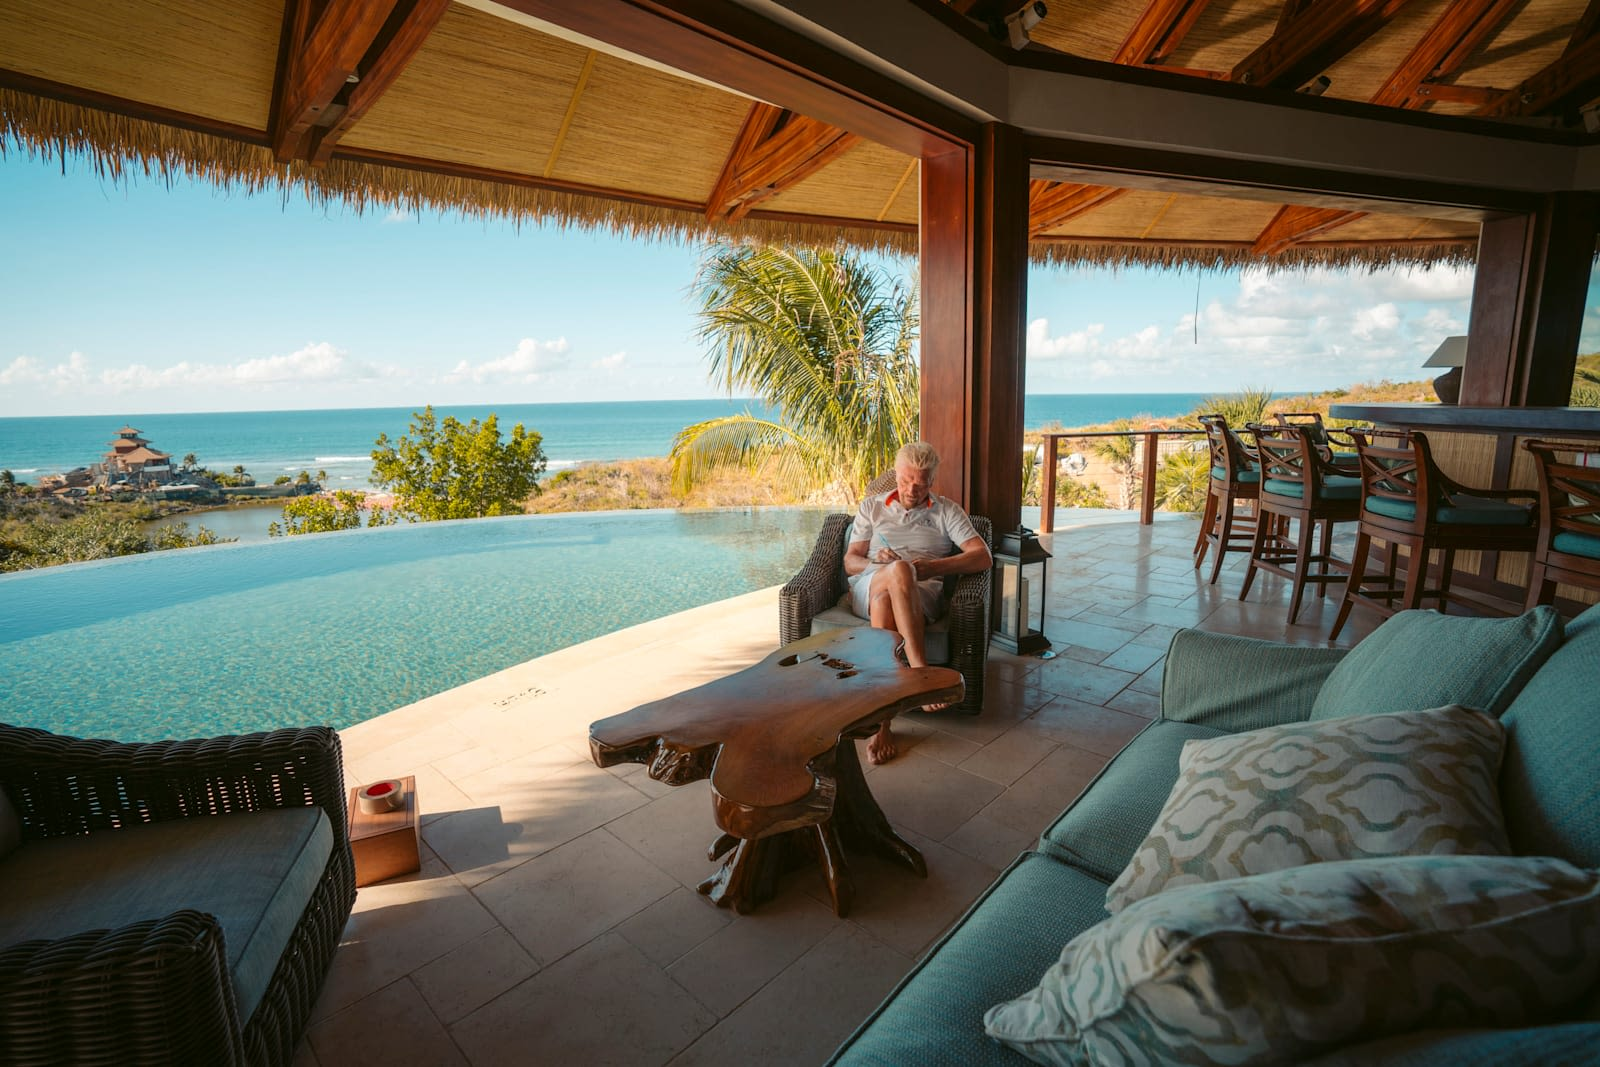 Richard Branson sitting in a chair by the pool on Necker Island writing